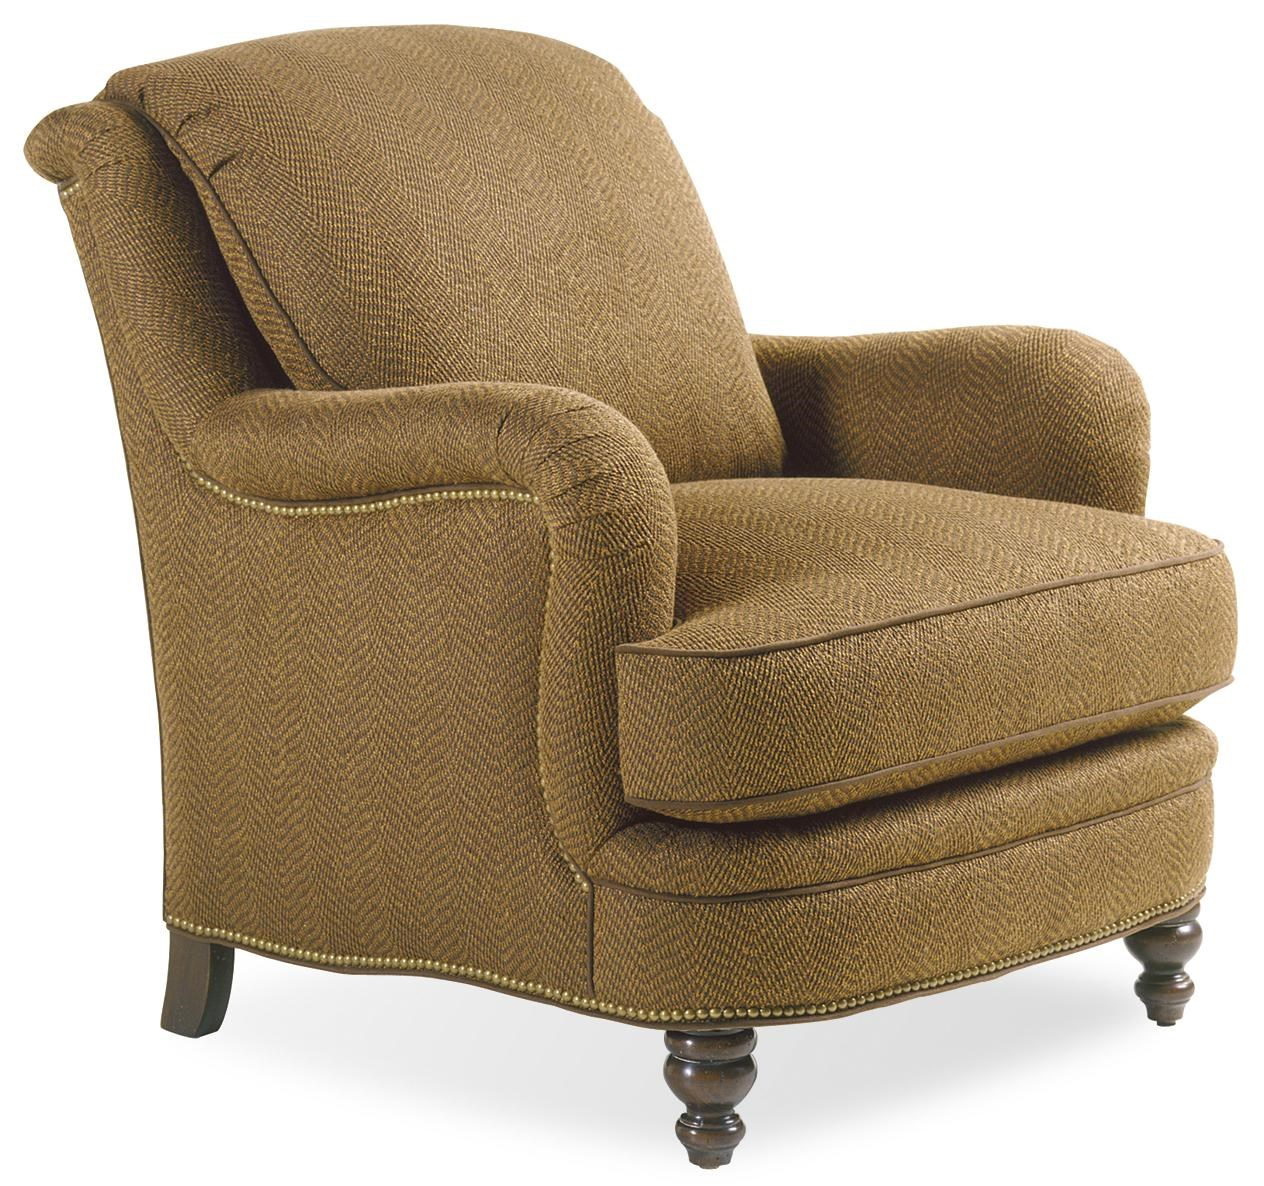 Jessica Charles Fine Upholstered Accents Placid Lounge Chair with Rolled Arms - Sprintz ...